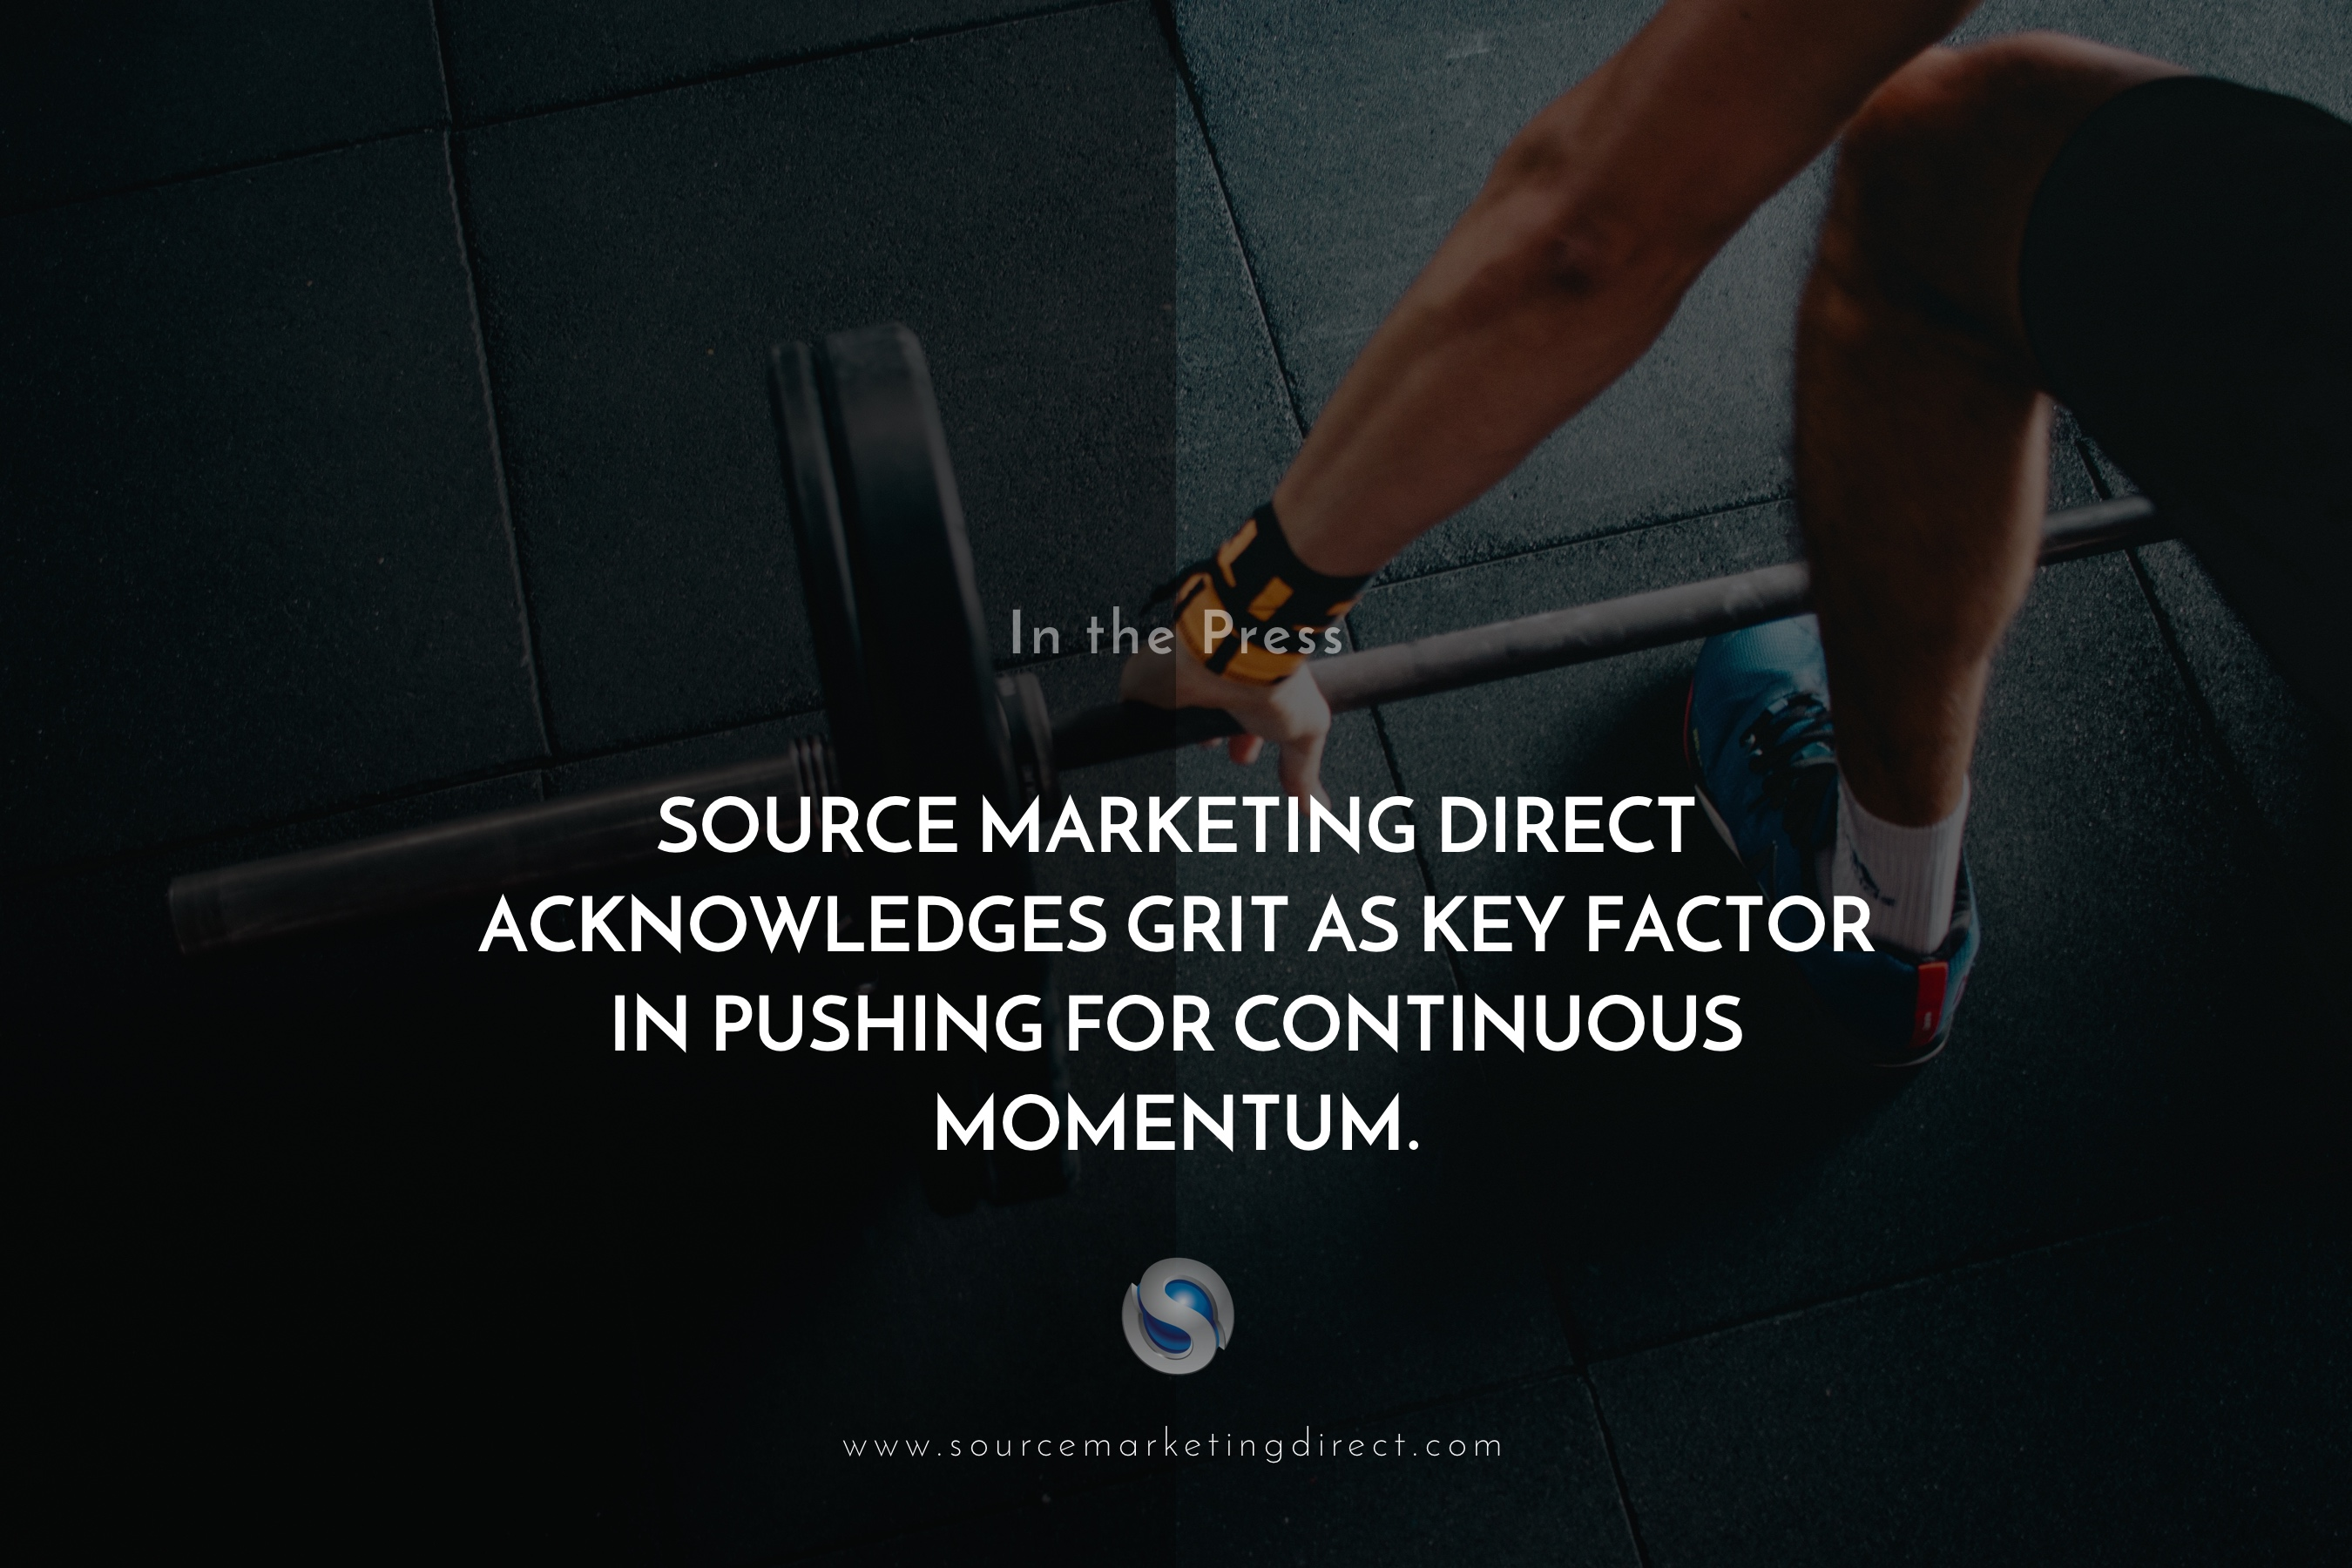 Source Marketing Direct acknowledges grit as key factor in pushing for continuous momentum.